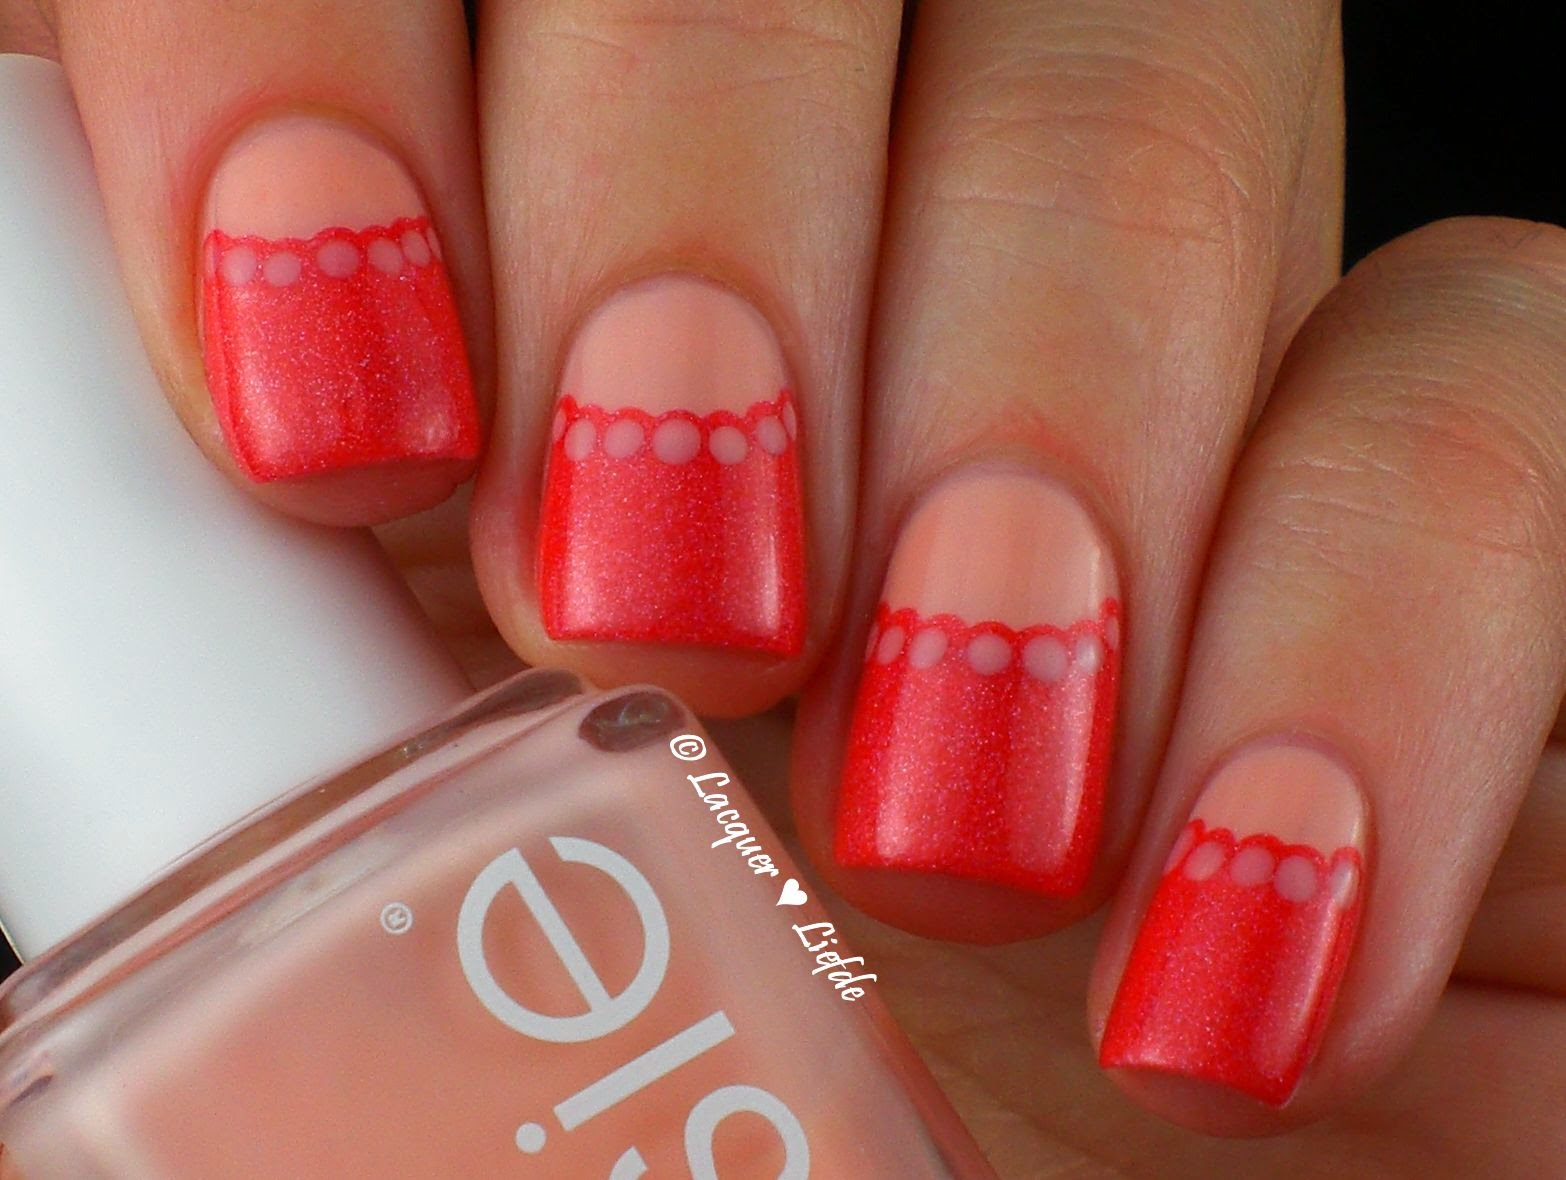 Halfmoon Dotting Design with Lilypad Sweet as a Peach, Essie and Catrice Ultra Stay Gel Shine